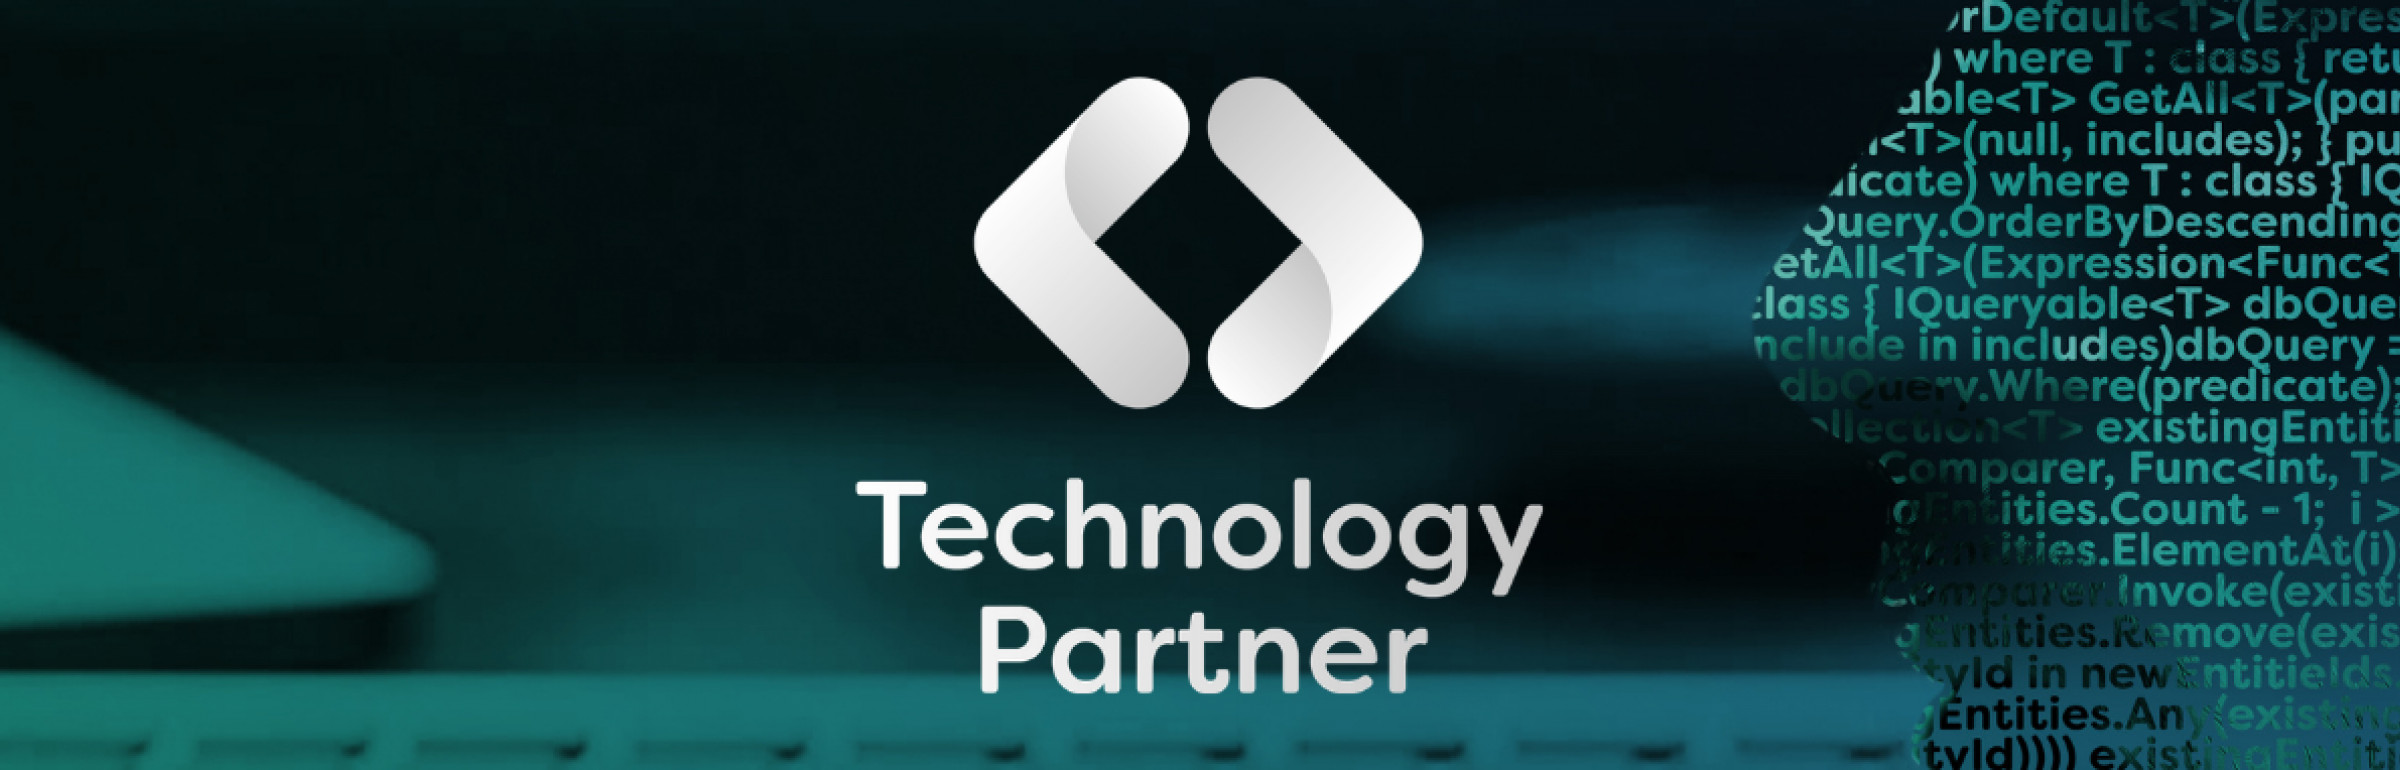 Banner Technology Partner